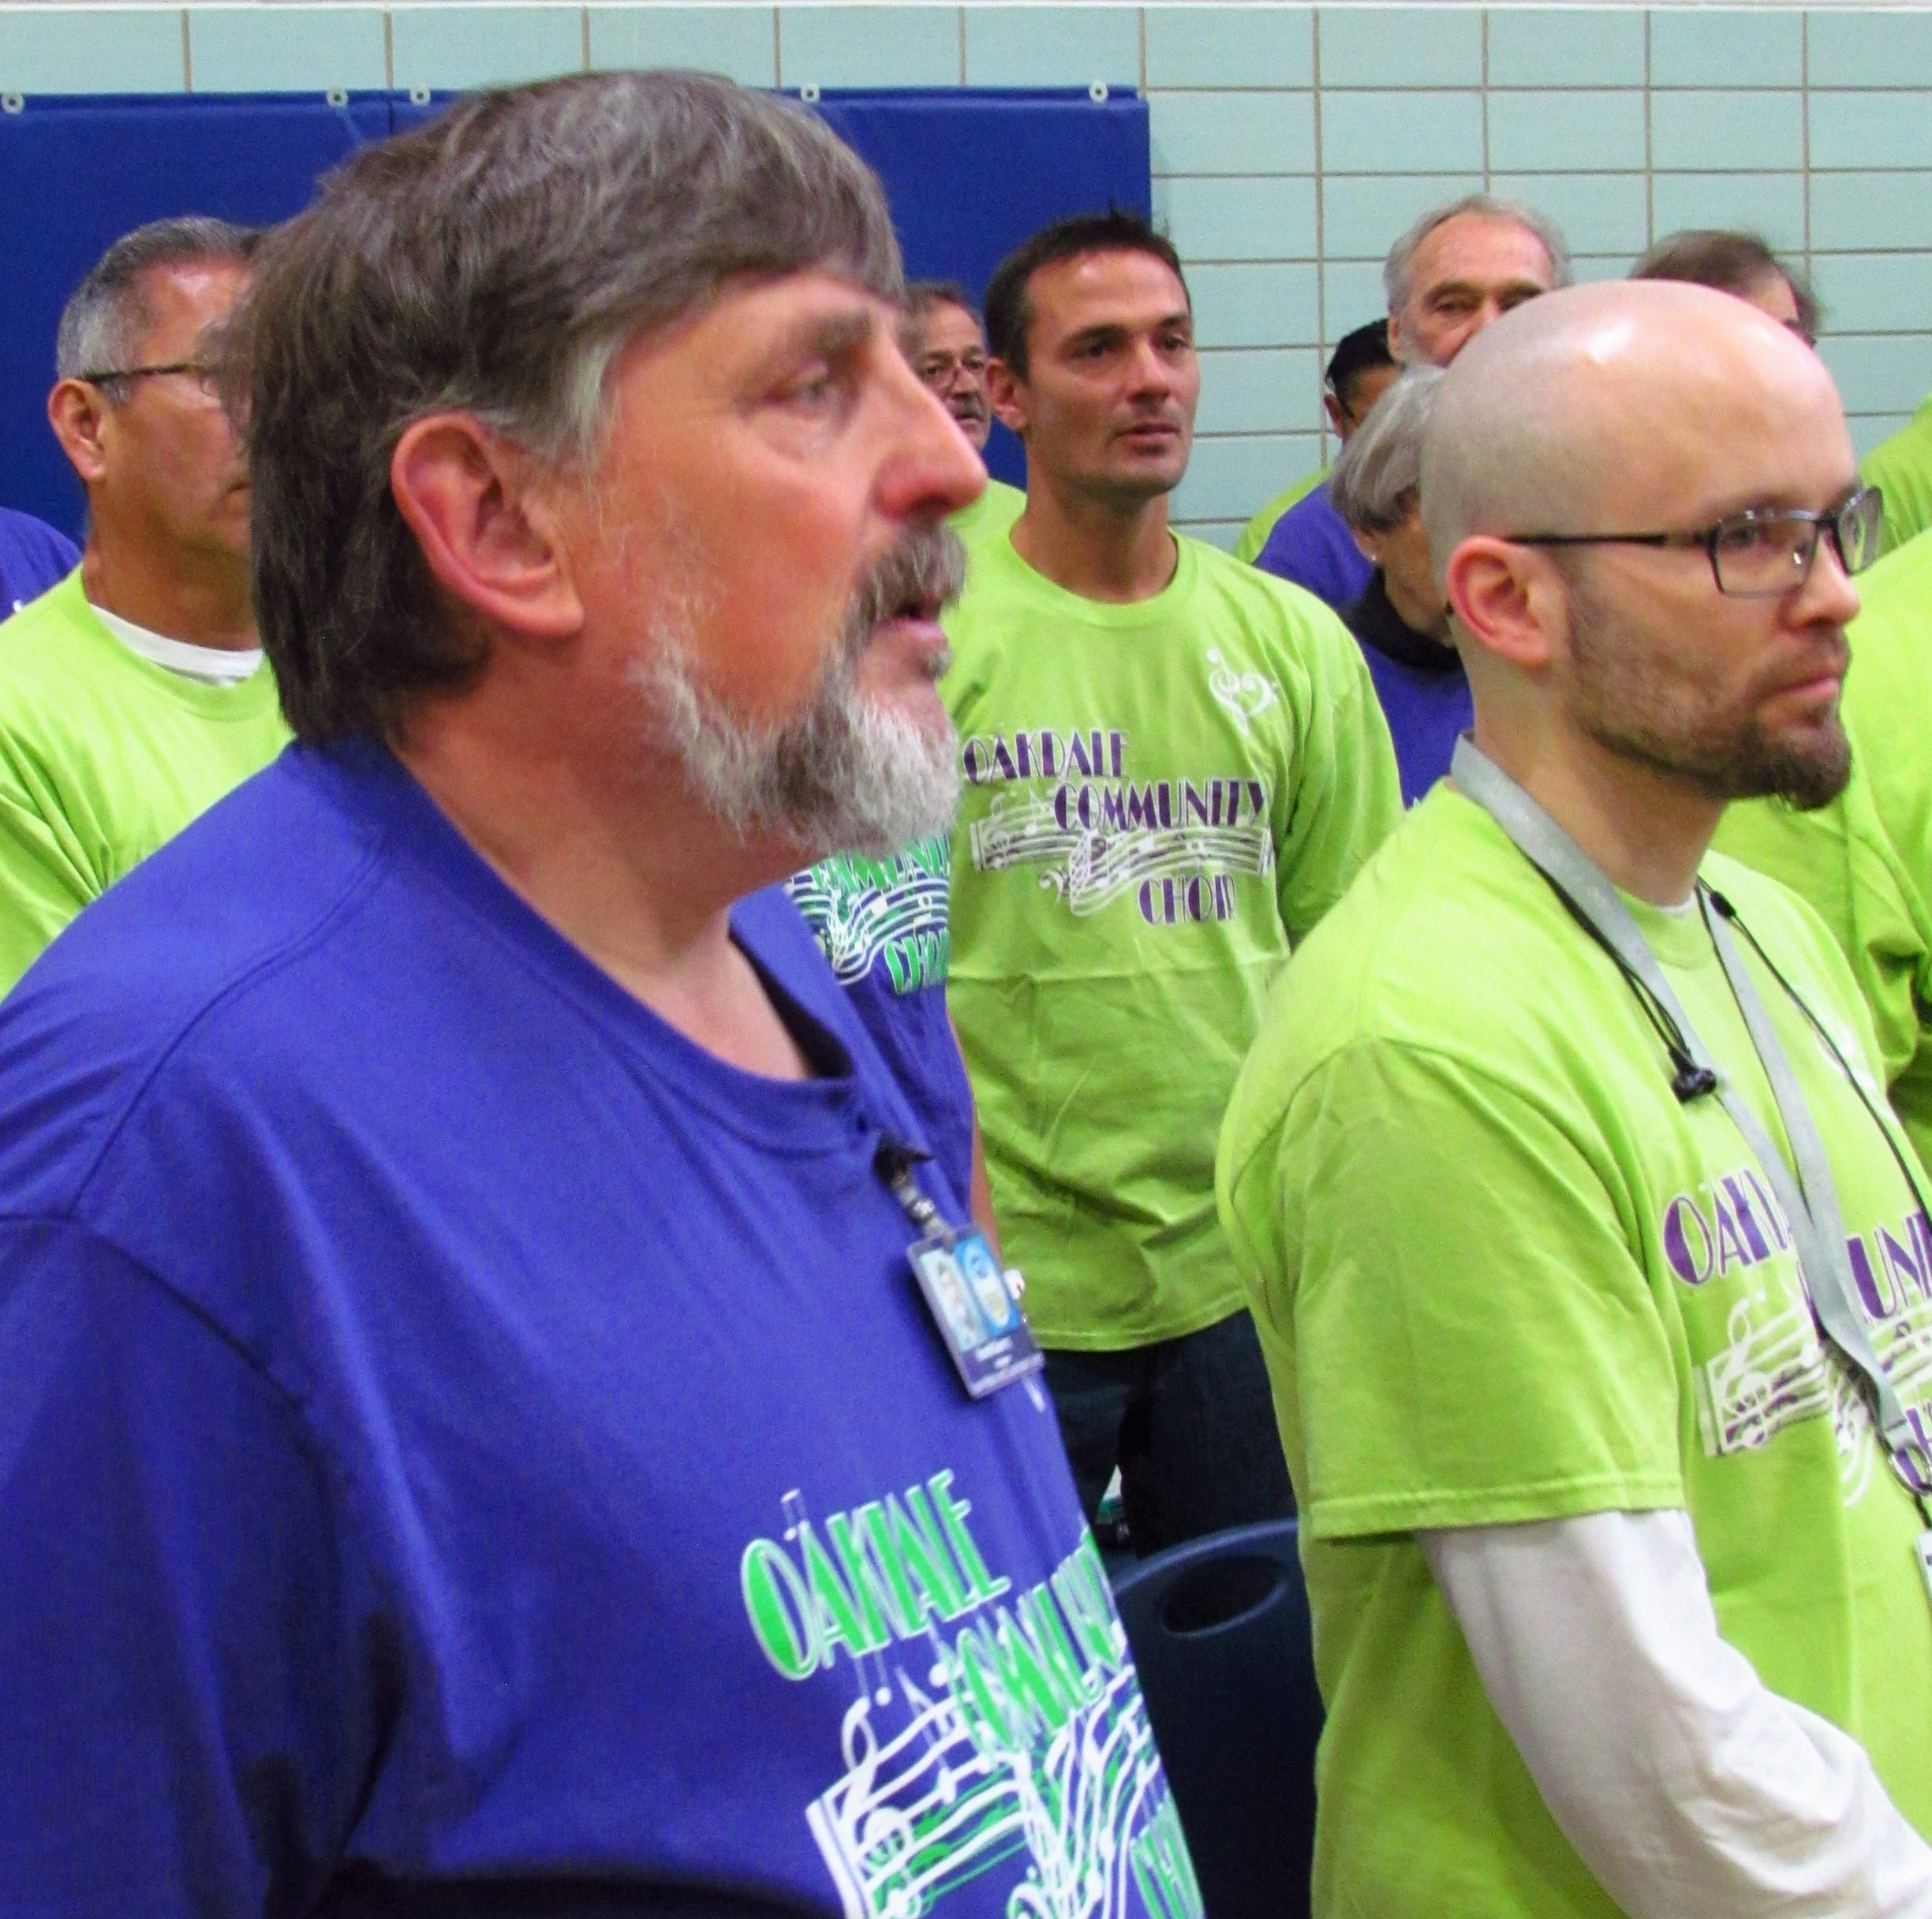 Once behind bars, he now sings with Oakdale Choir as a free man